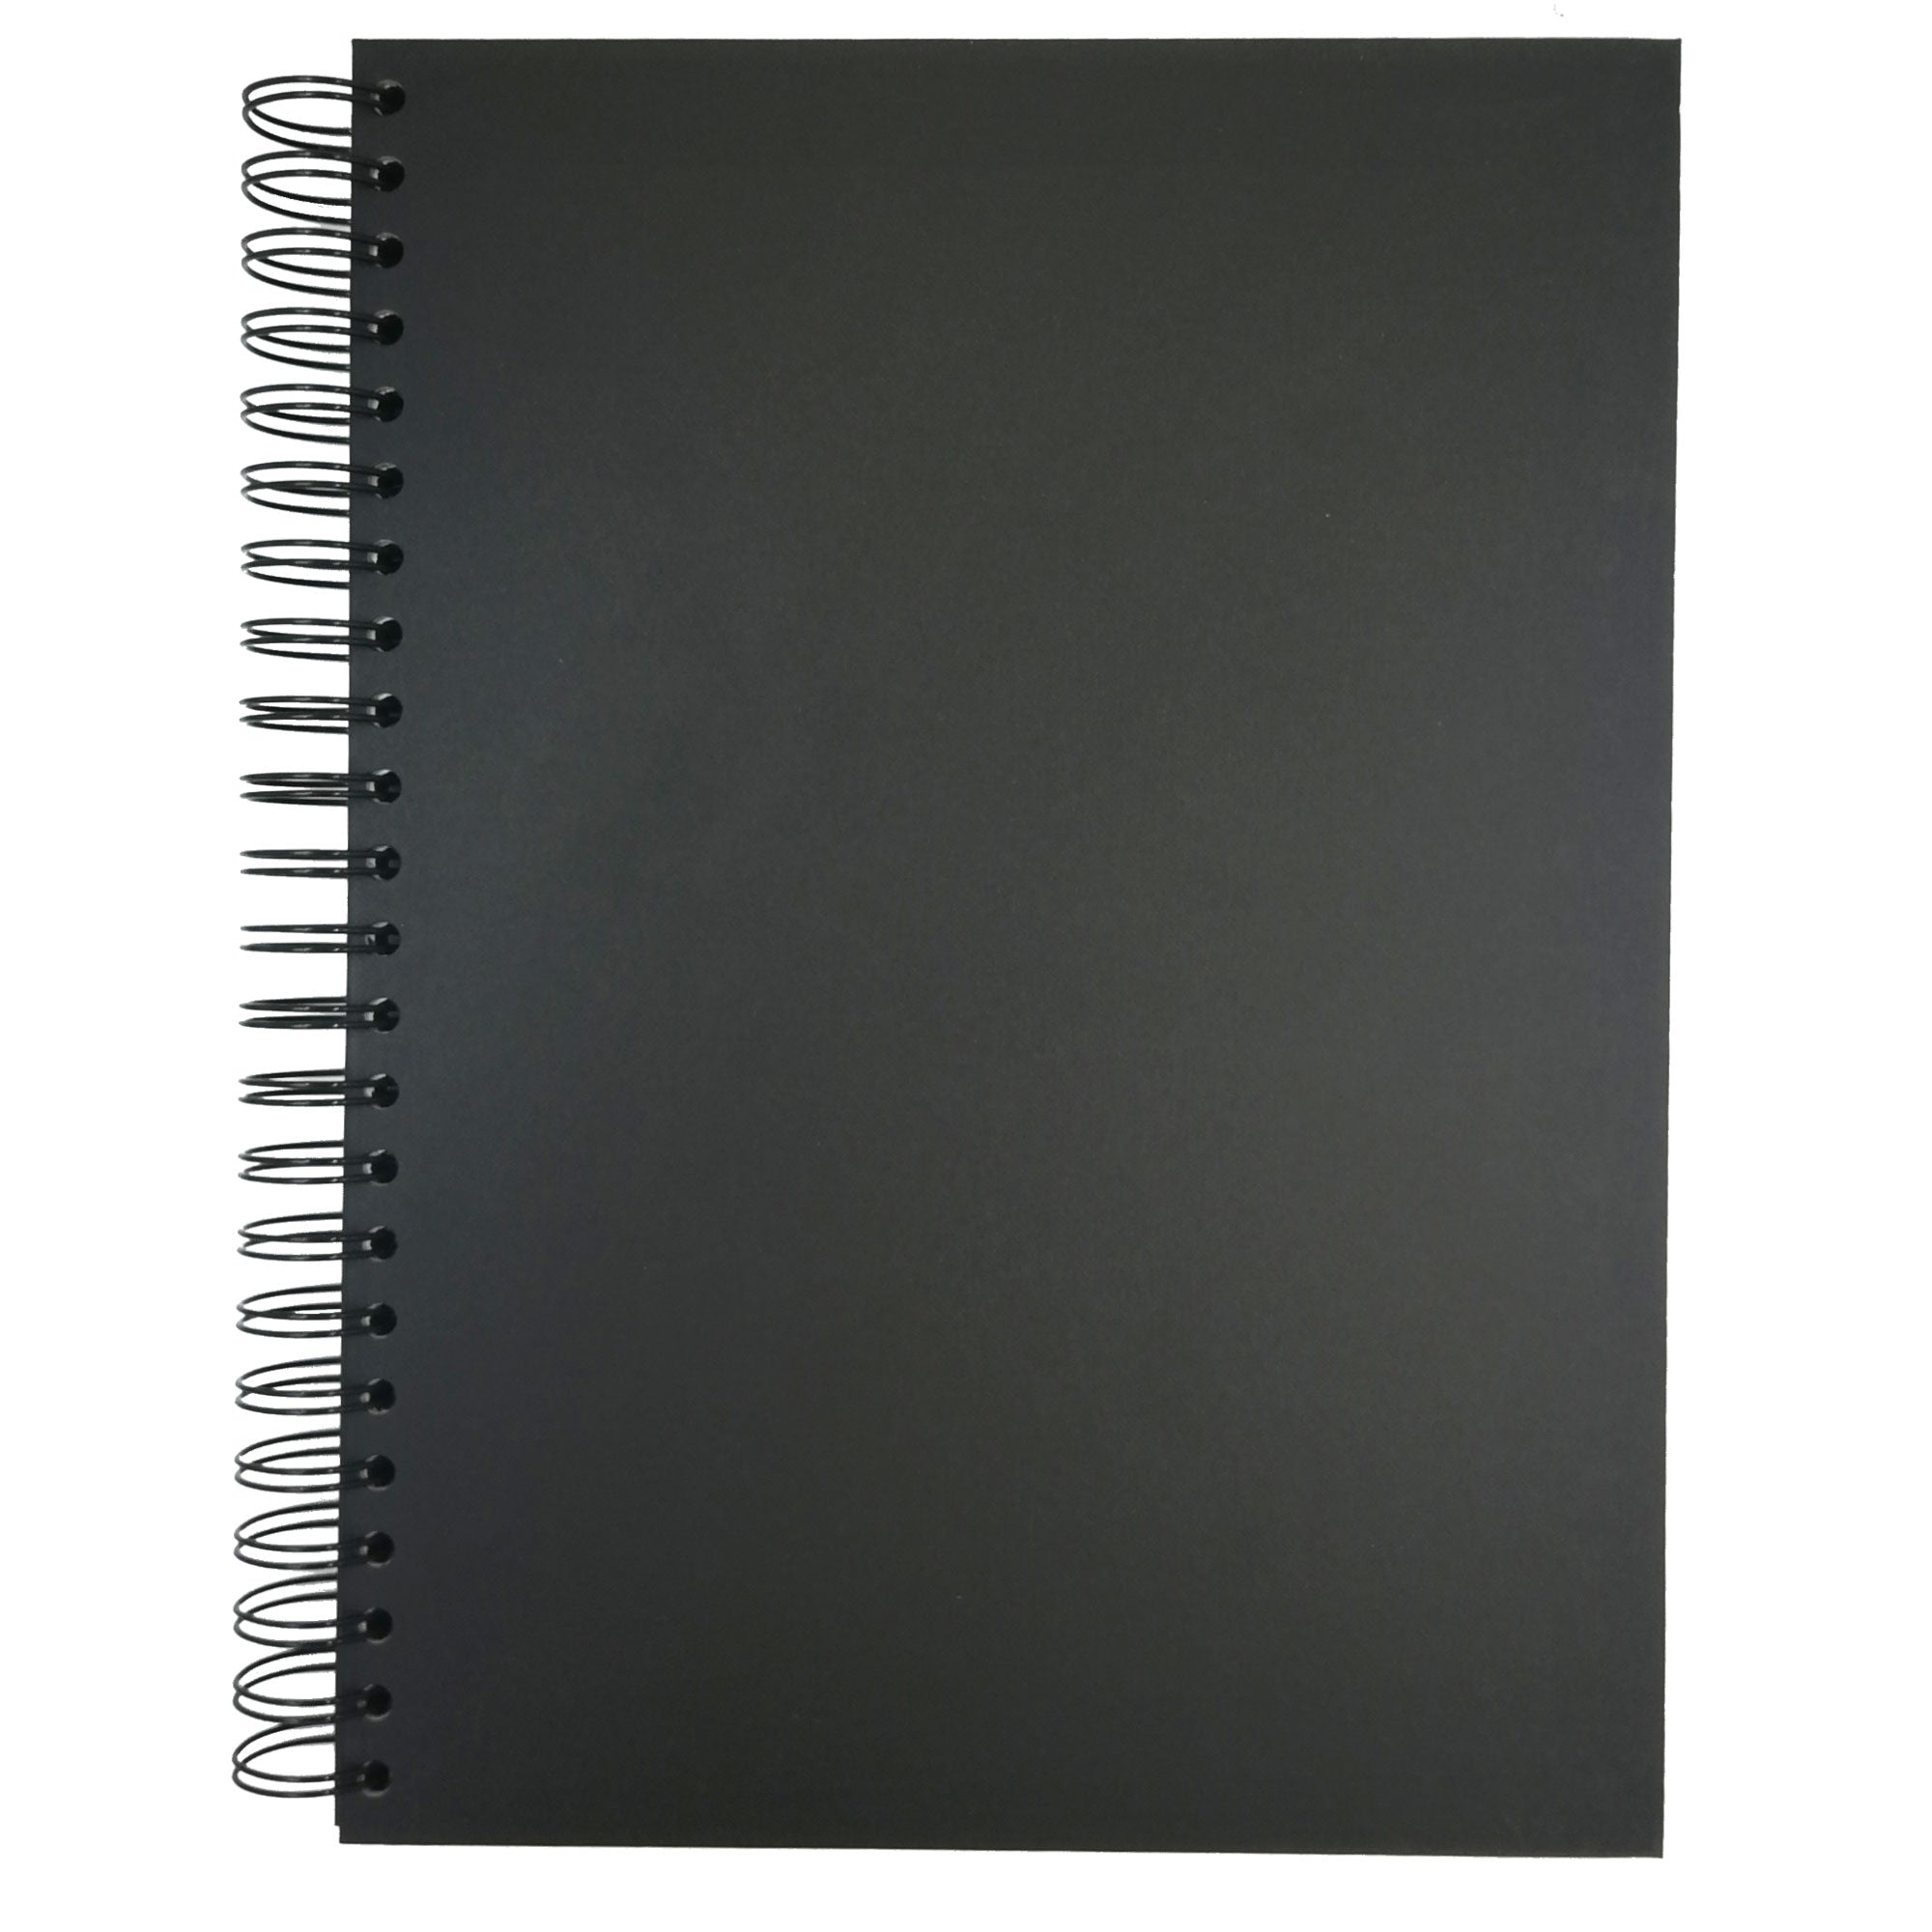 Seawhite Black Paper Hard Back Spiral Sketchbook